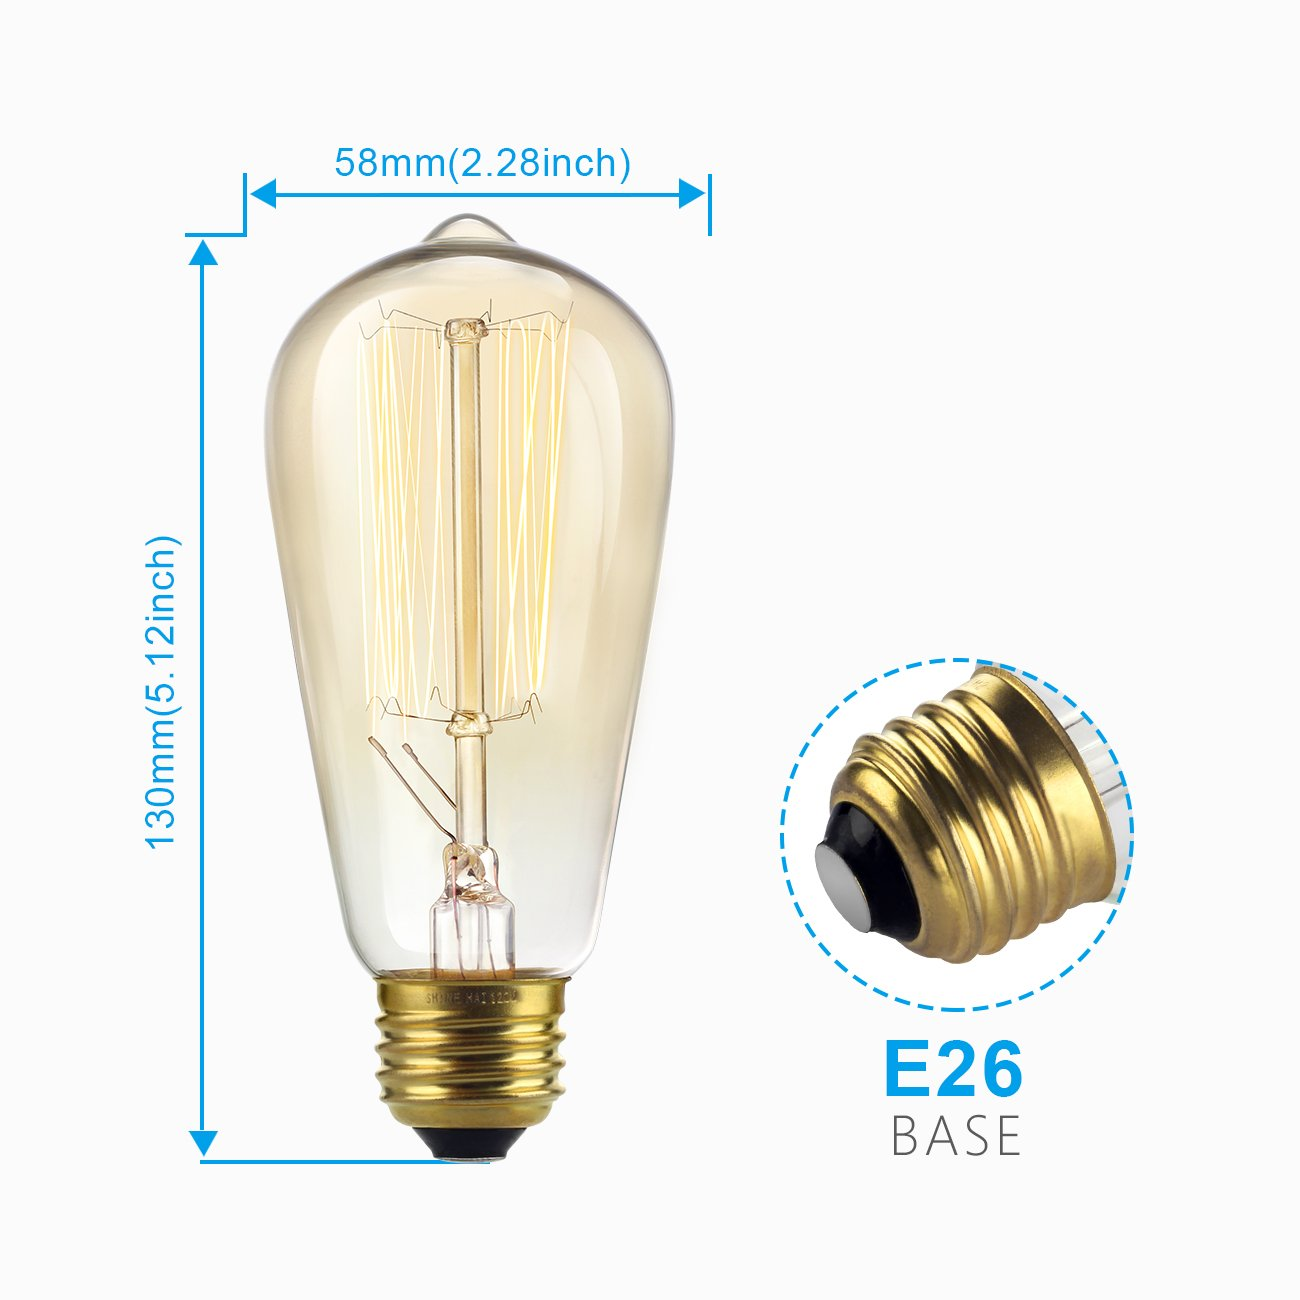 SHINE HAI Vintage Edison Bulbs 60W, Antique Style ST58 Squirrel Cage Filament, 300 Lumens, Dimmable Teardrop Design, E26 Medium Base 2300K, Pack of 6